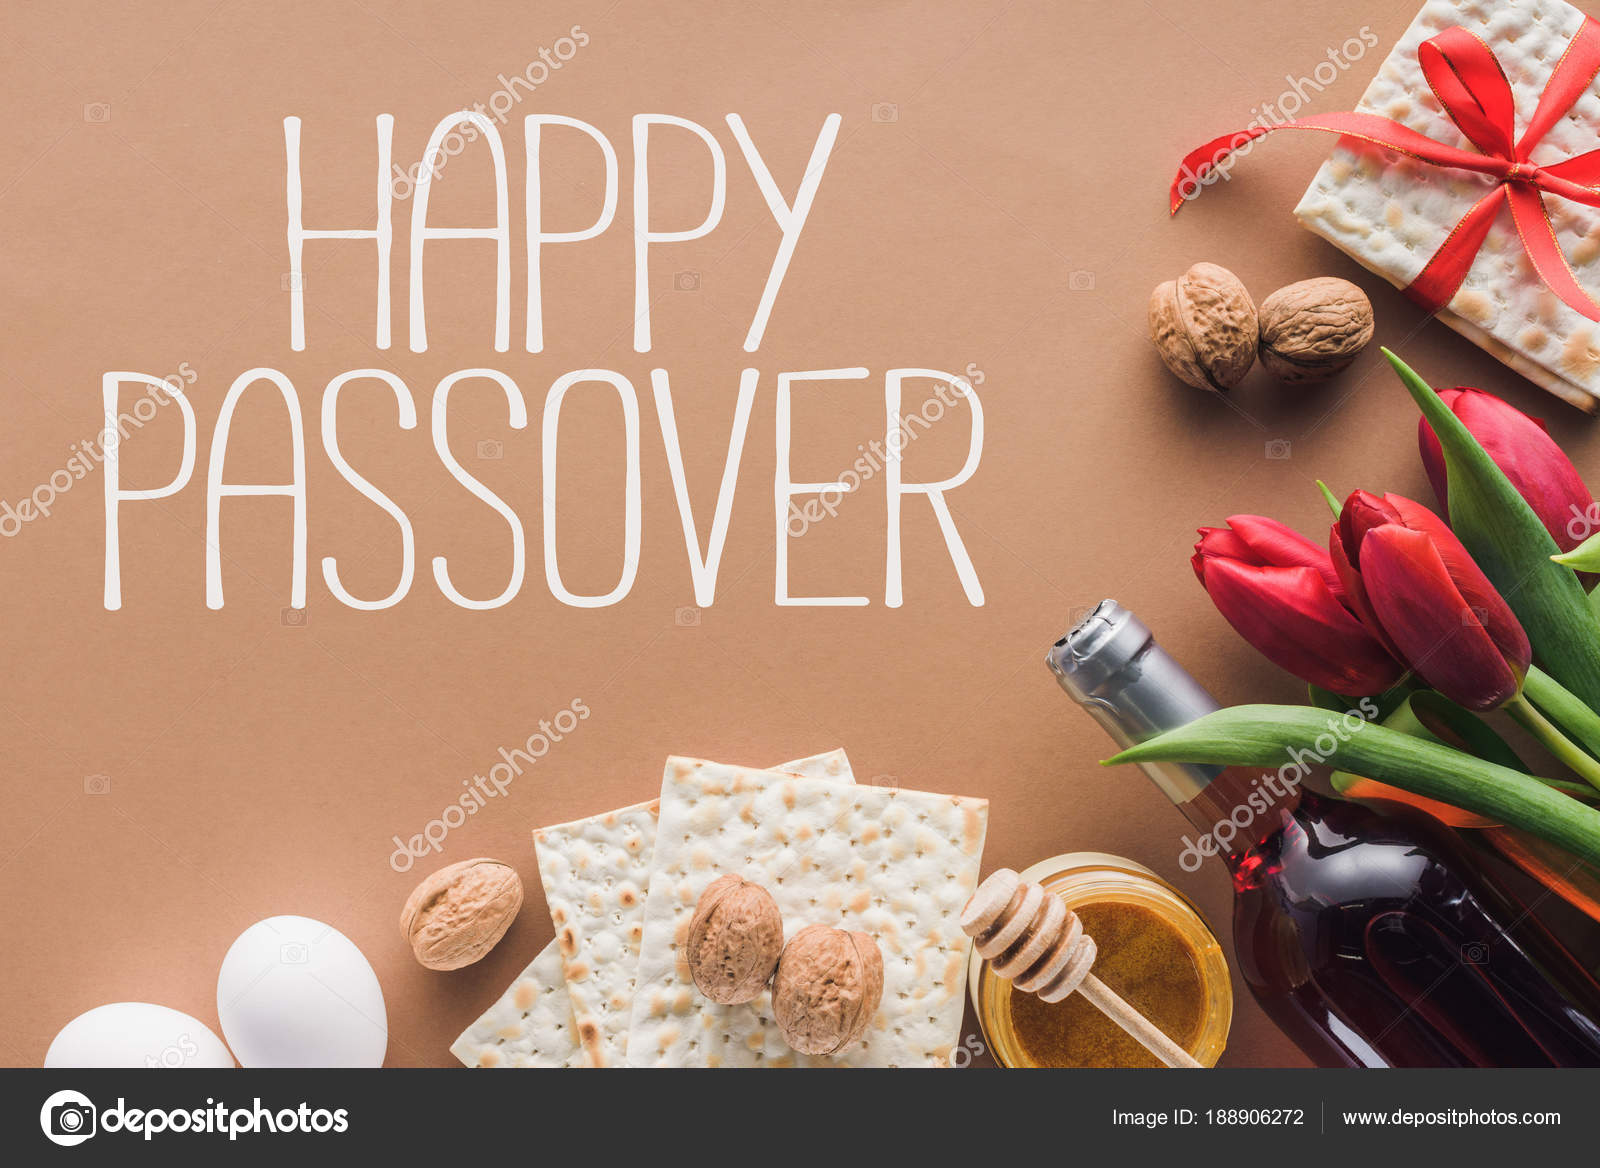 Top View Happy Passover Greeting Matza Brown Passover Tale Concept